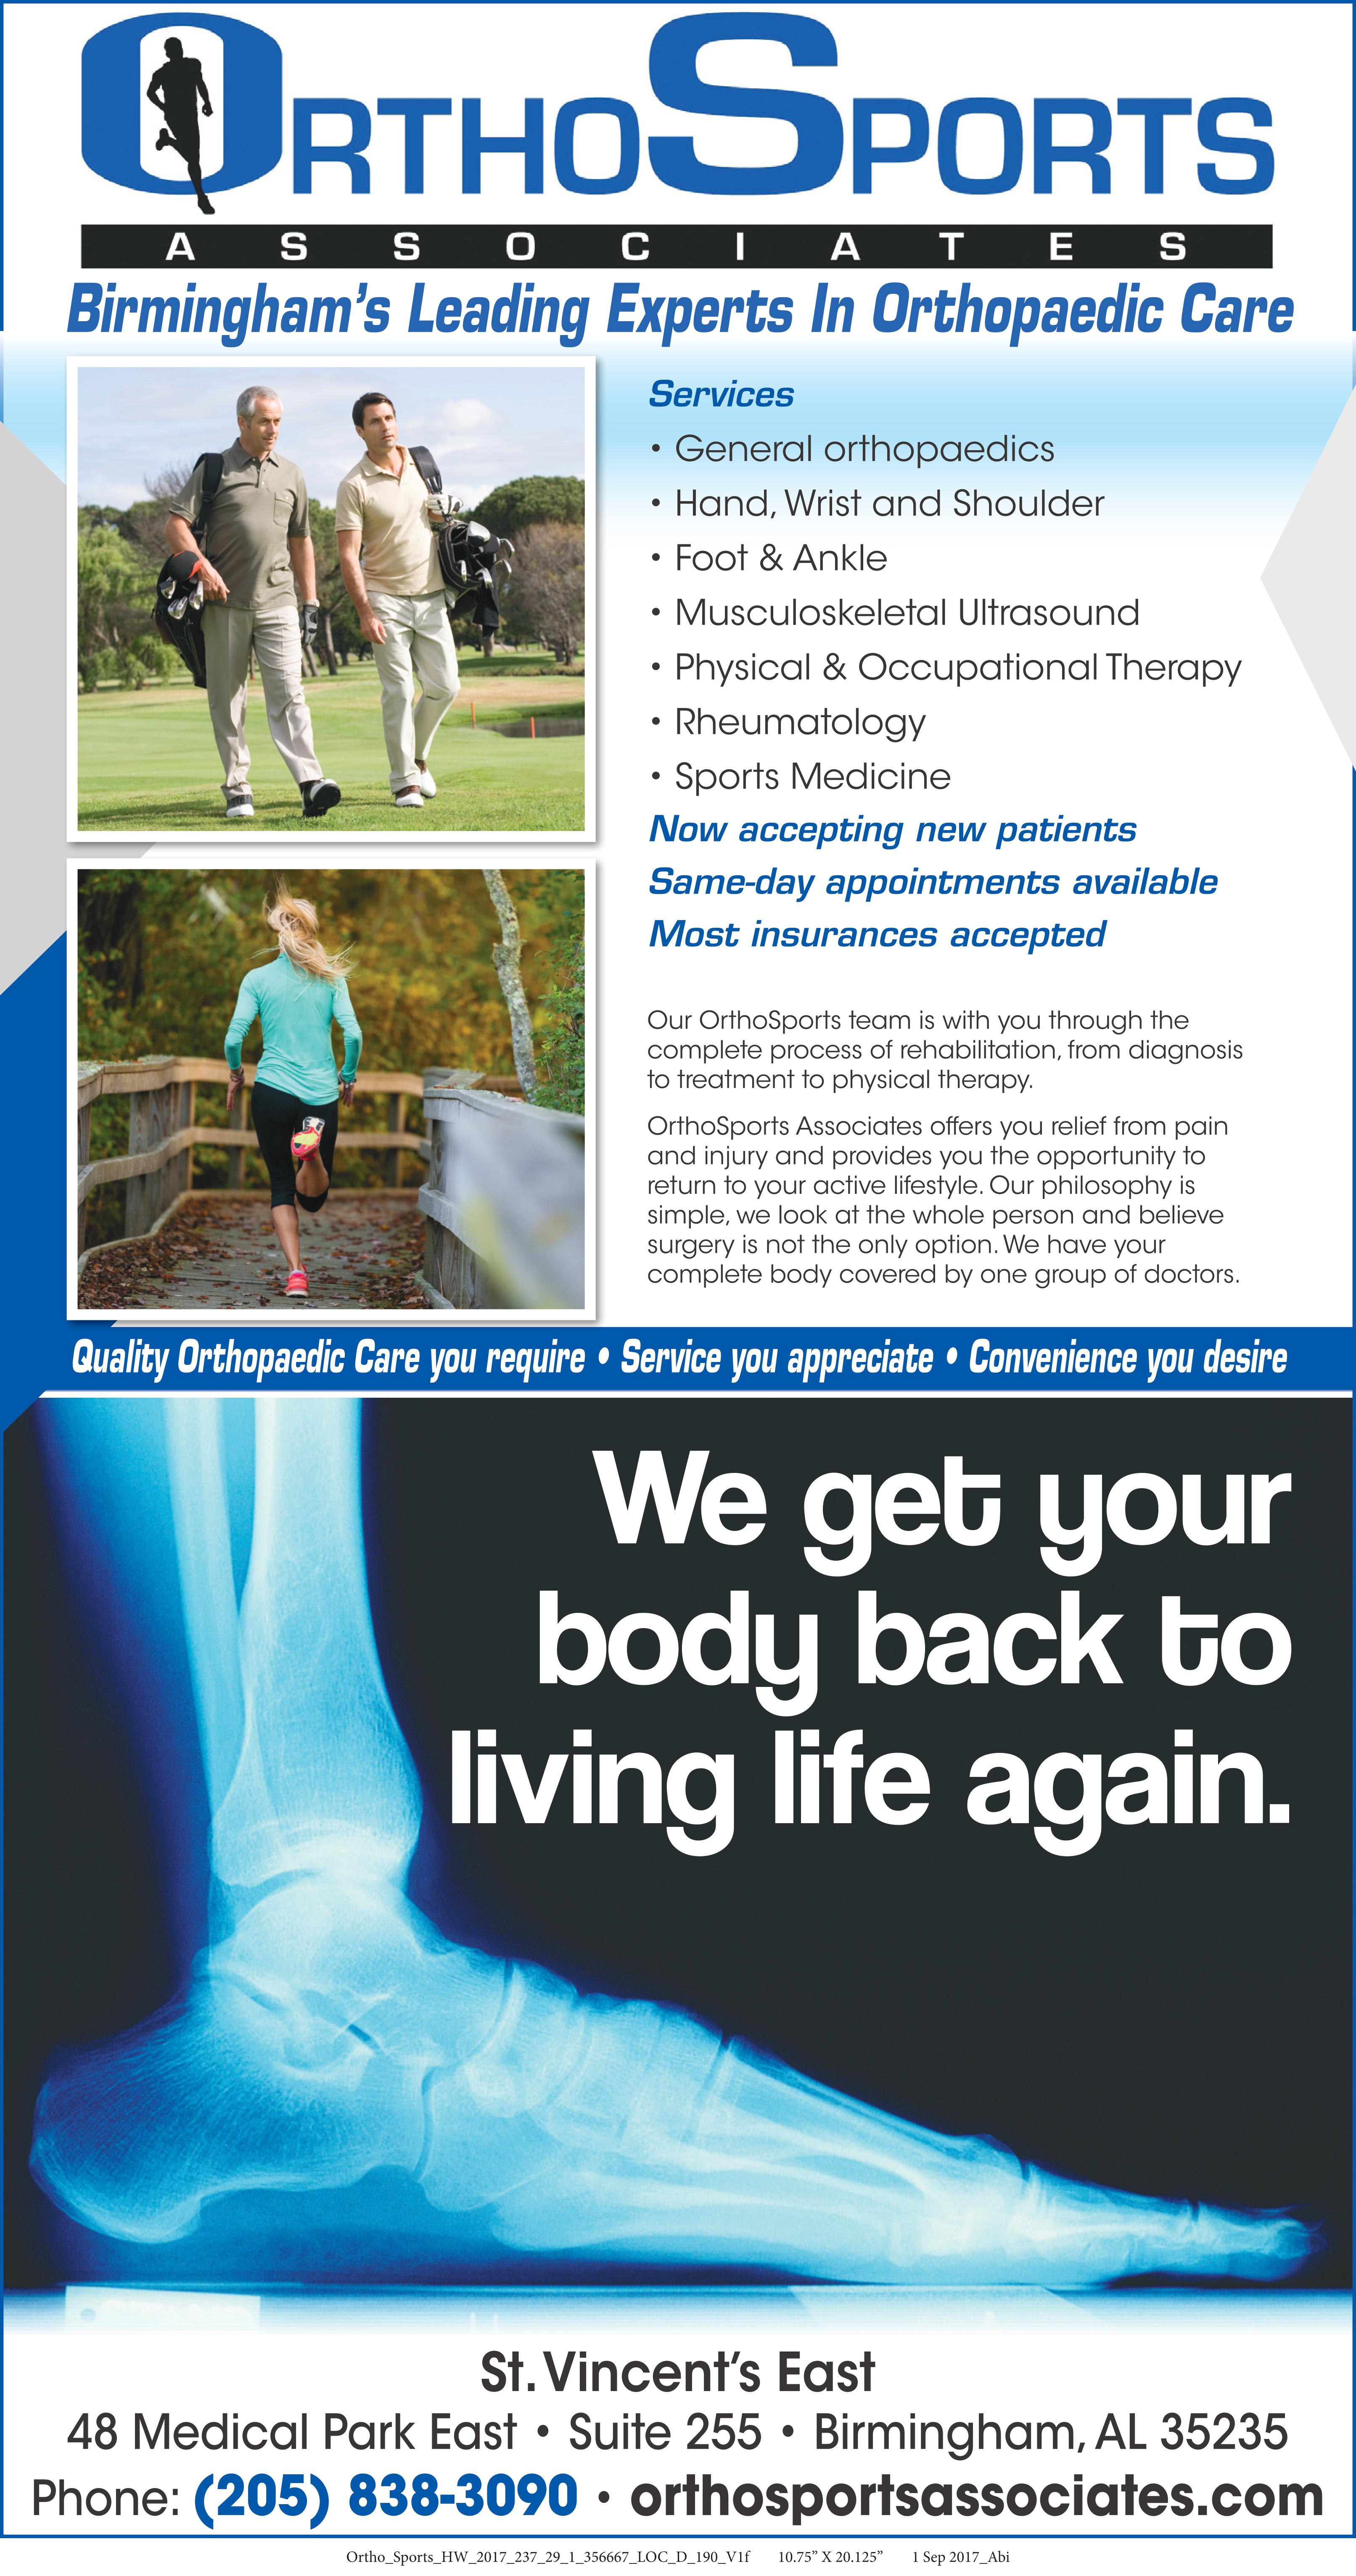 OrthoSports Associates at St. Vincent's East treats all orthopedic conditions